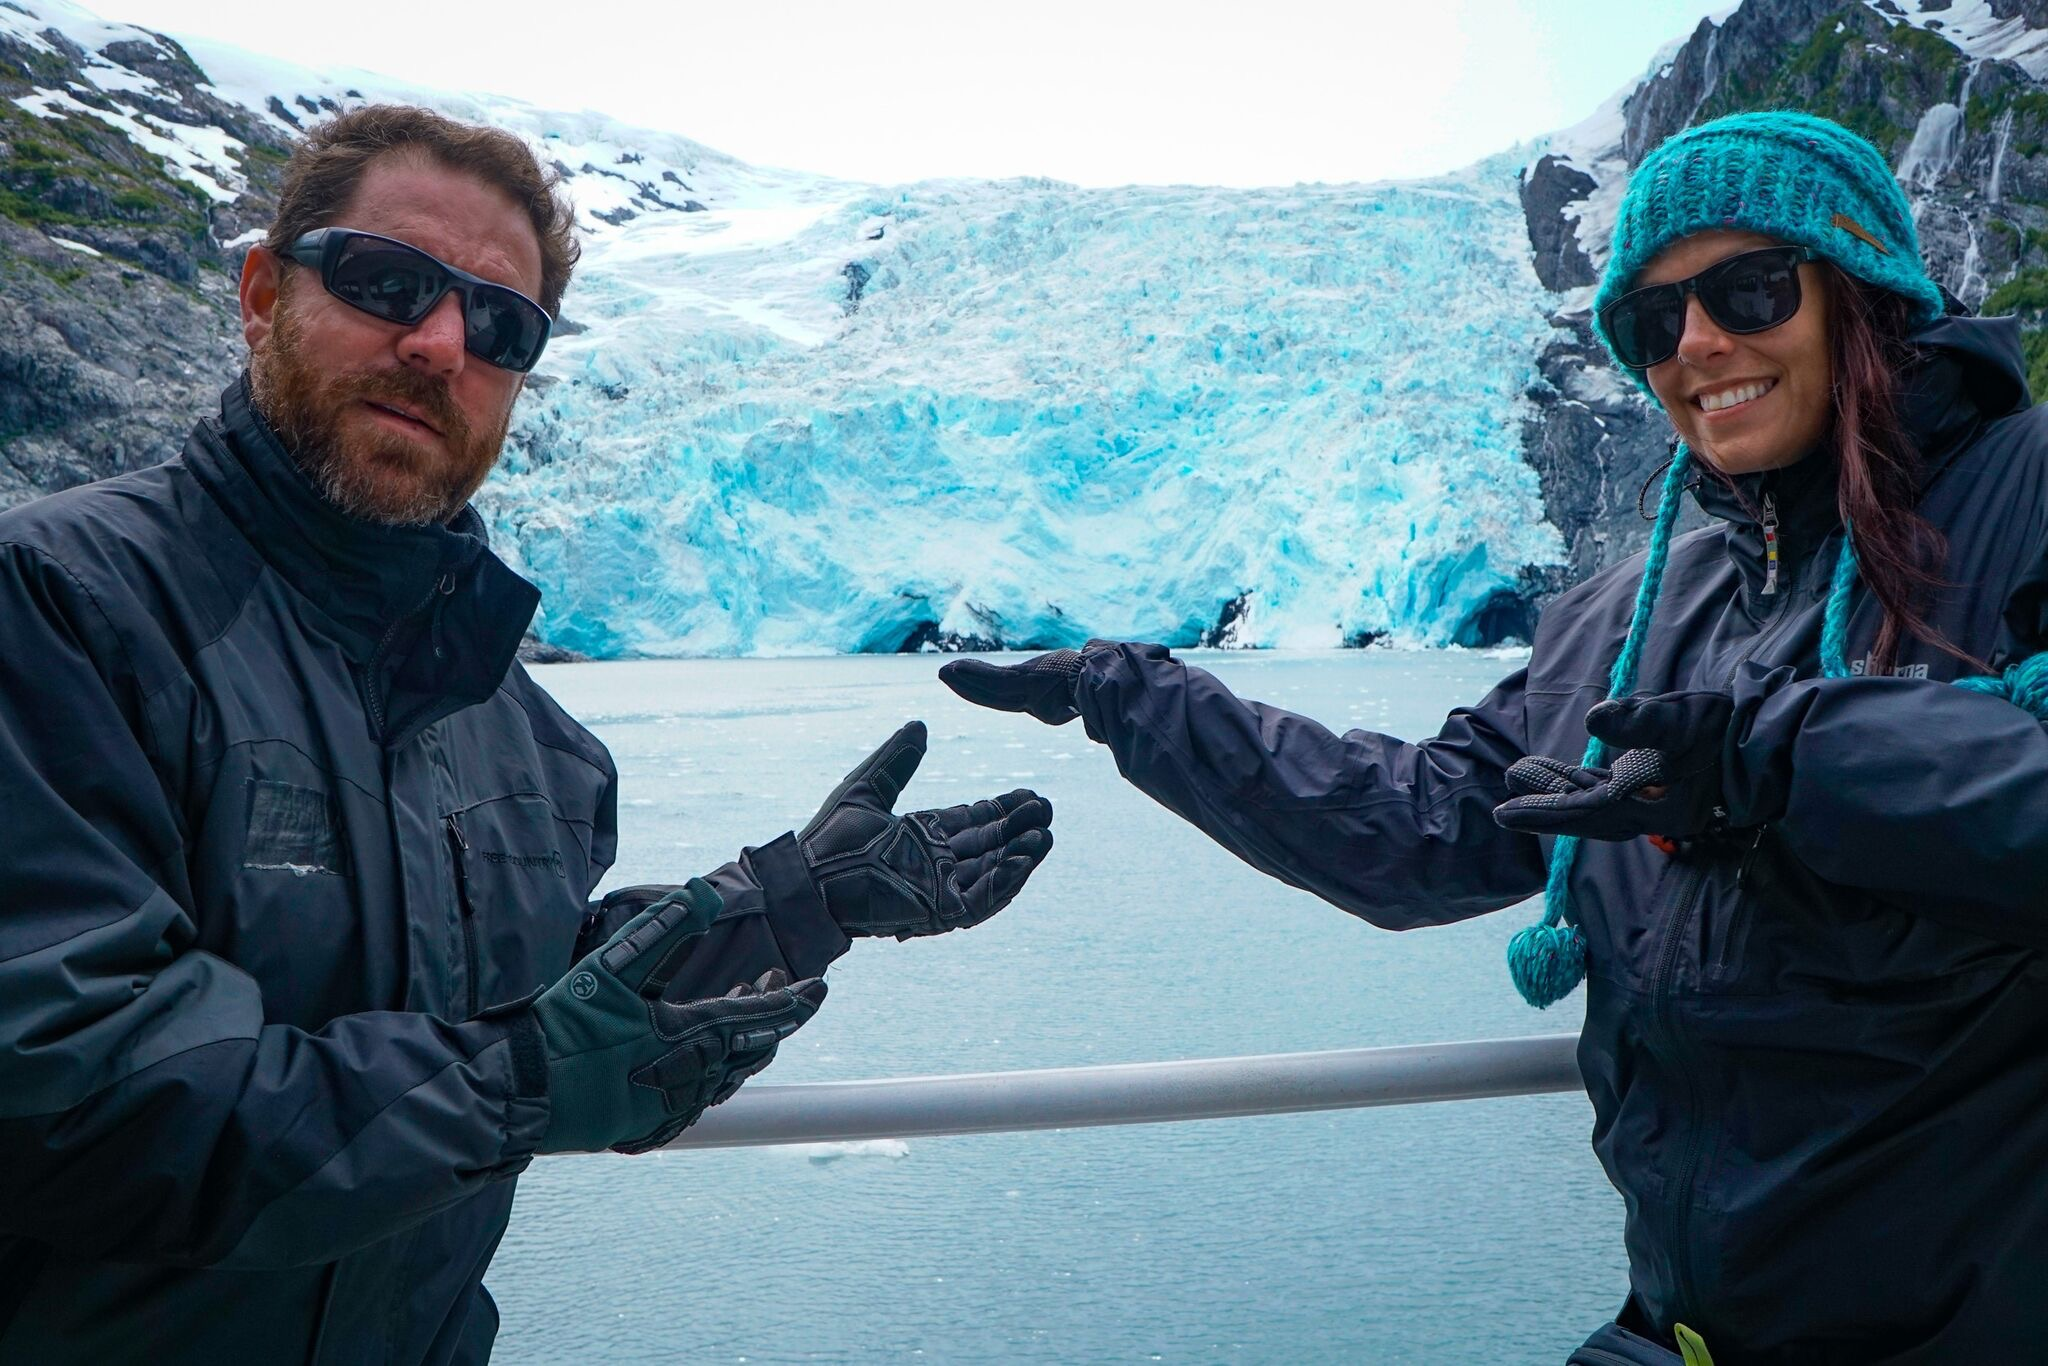 Nick and I doing our best Vanna White impression to showcase the glacier while waiting to see it calve into the water.